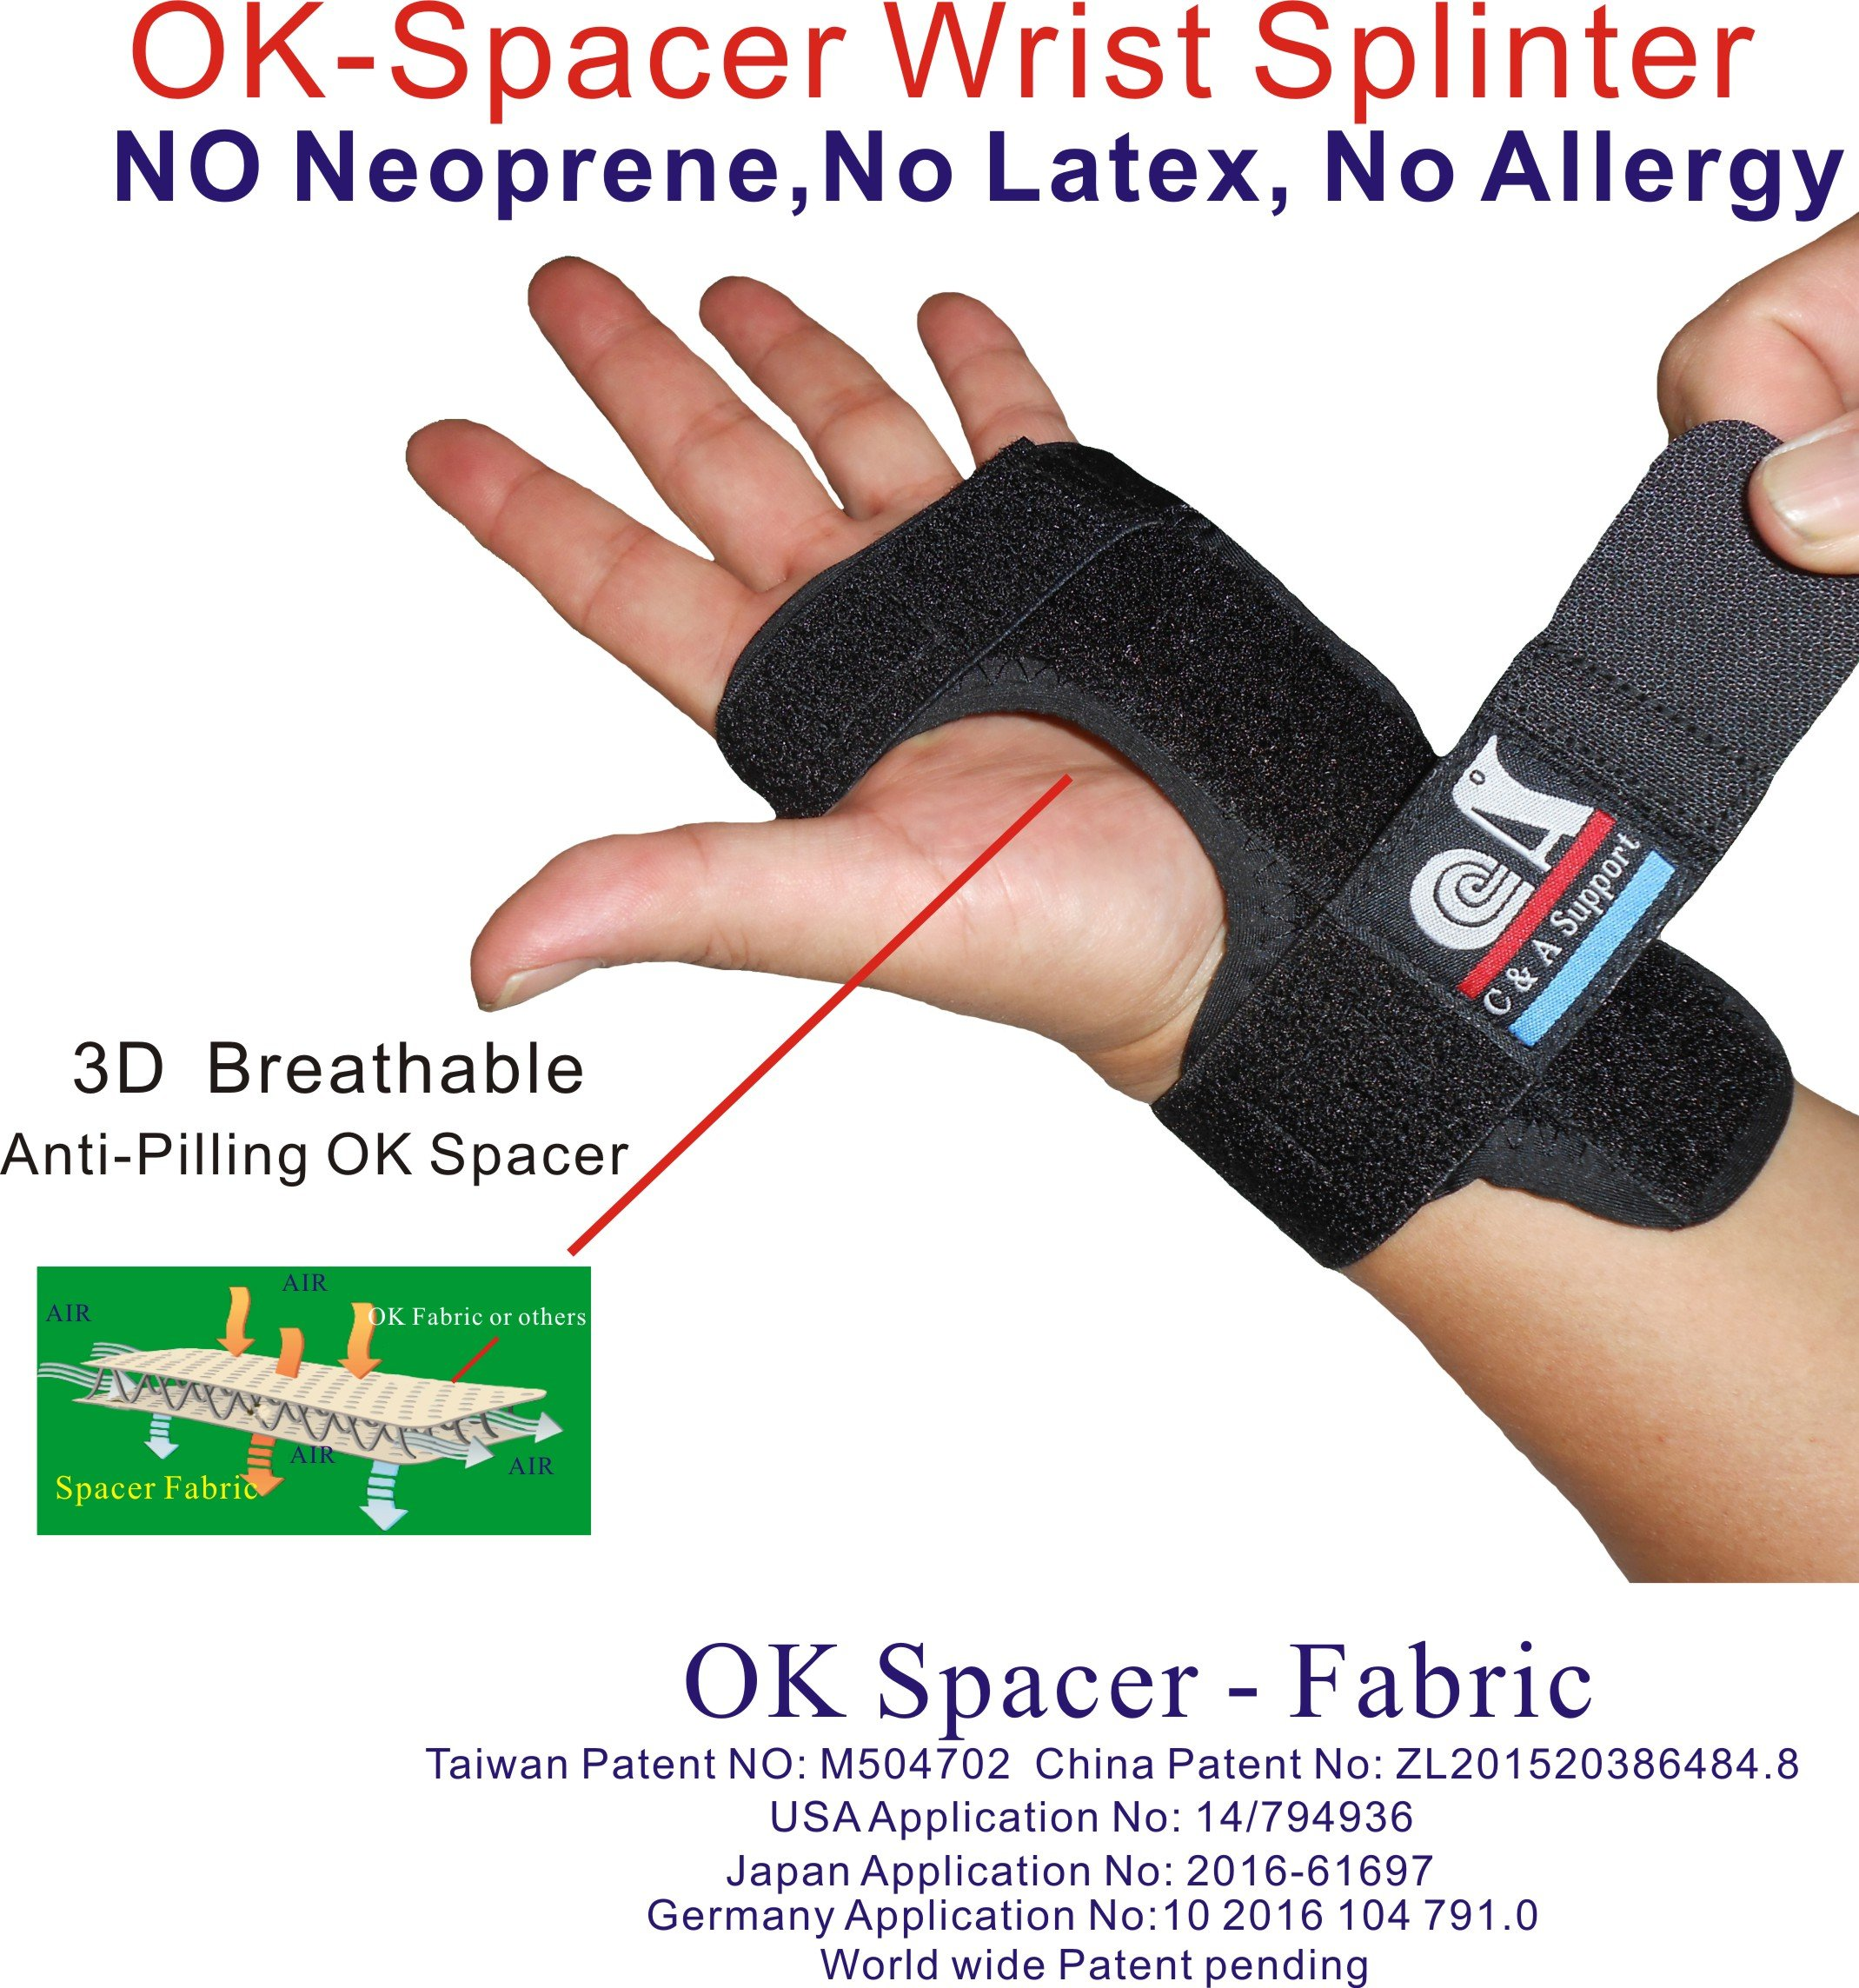 C&A Support, WS-OS-20, New 3D Breathable Patented Fabric RSI Night Wrist Splint, Night Wrist Sleep Support for Carpal Tunnel, Tendonitis, Wrist Pain, Sprains, Adjustable by C&A Support